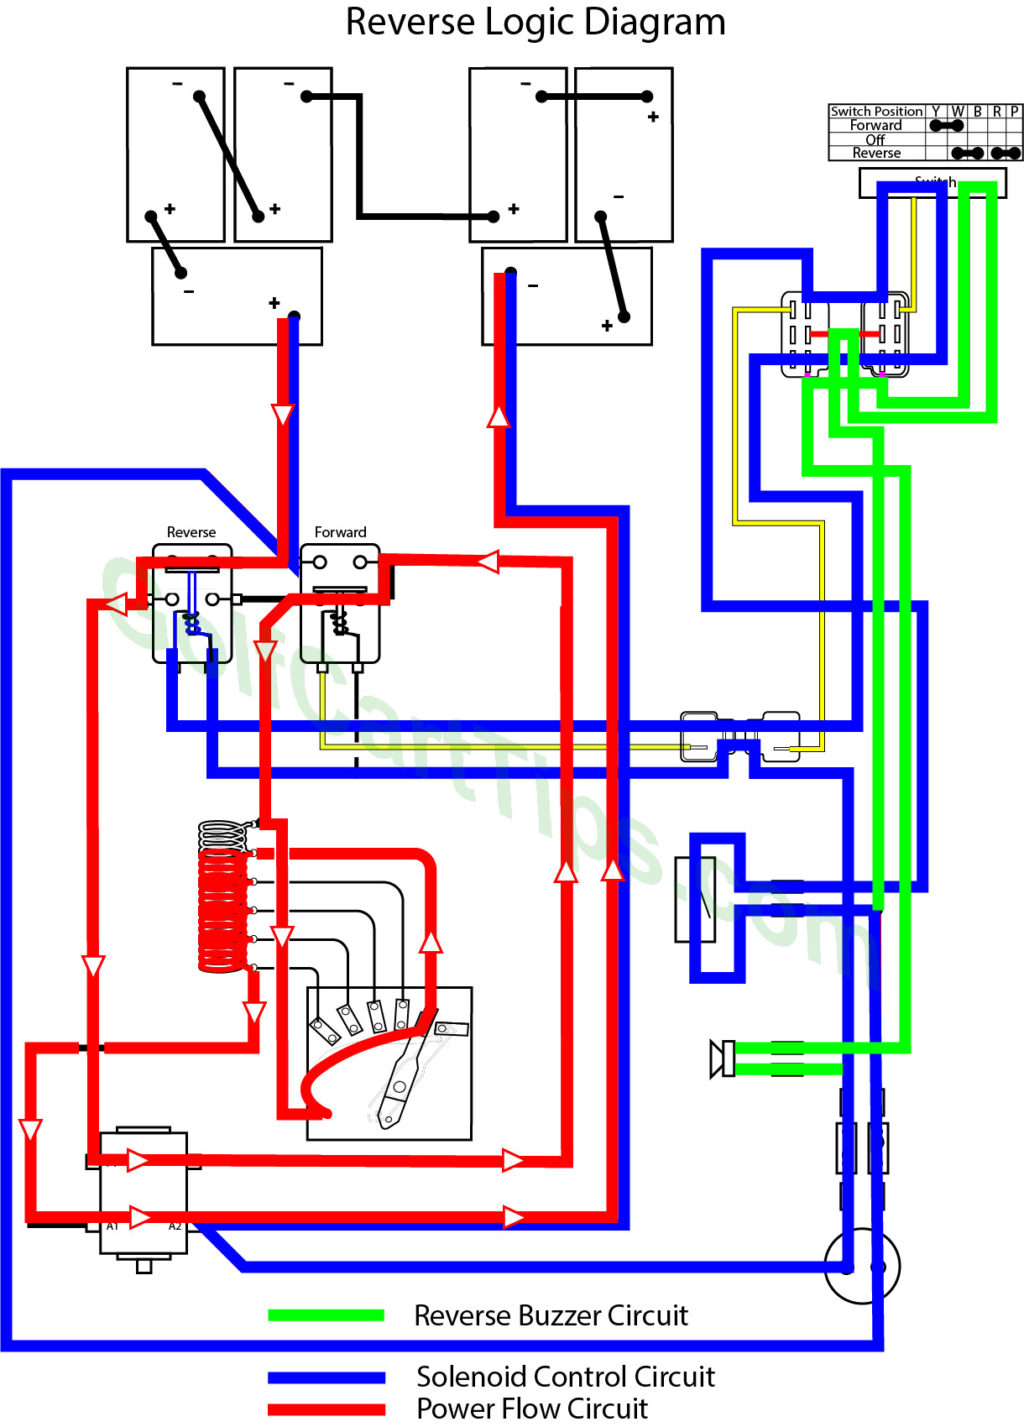 hight resolution of yamaha g1a and g1e wiring troubleshooting diagrams 1979 89 reverse buzzer wiring diagram